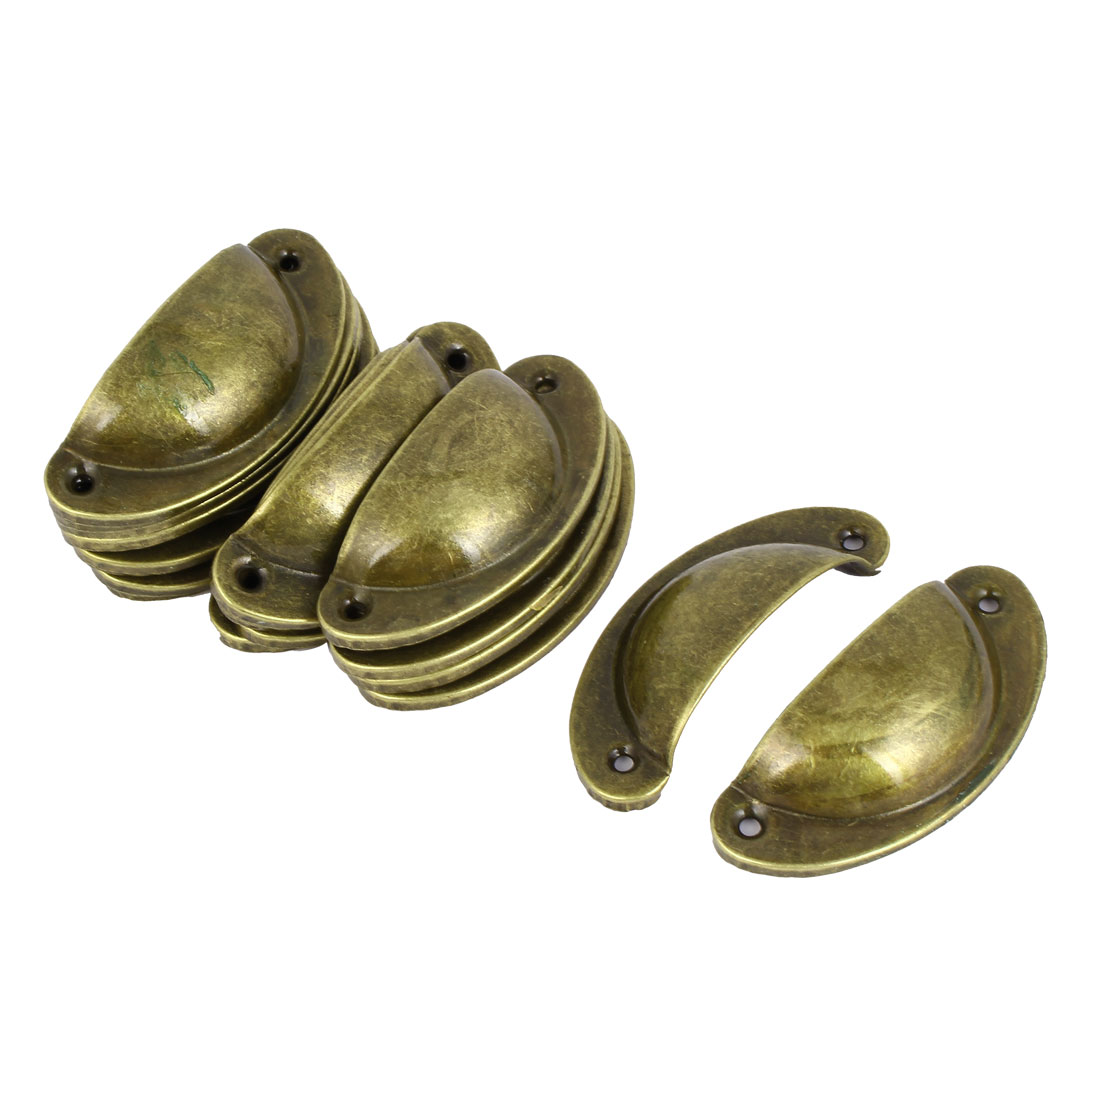 "Cupboard Wardrobe Drawer Metal Handle Pull knob Bronze Tone 3.2"" Long 20pcs"